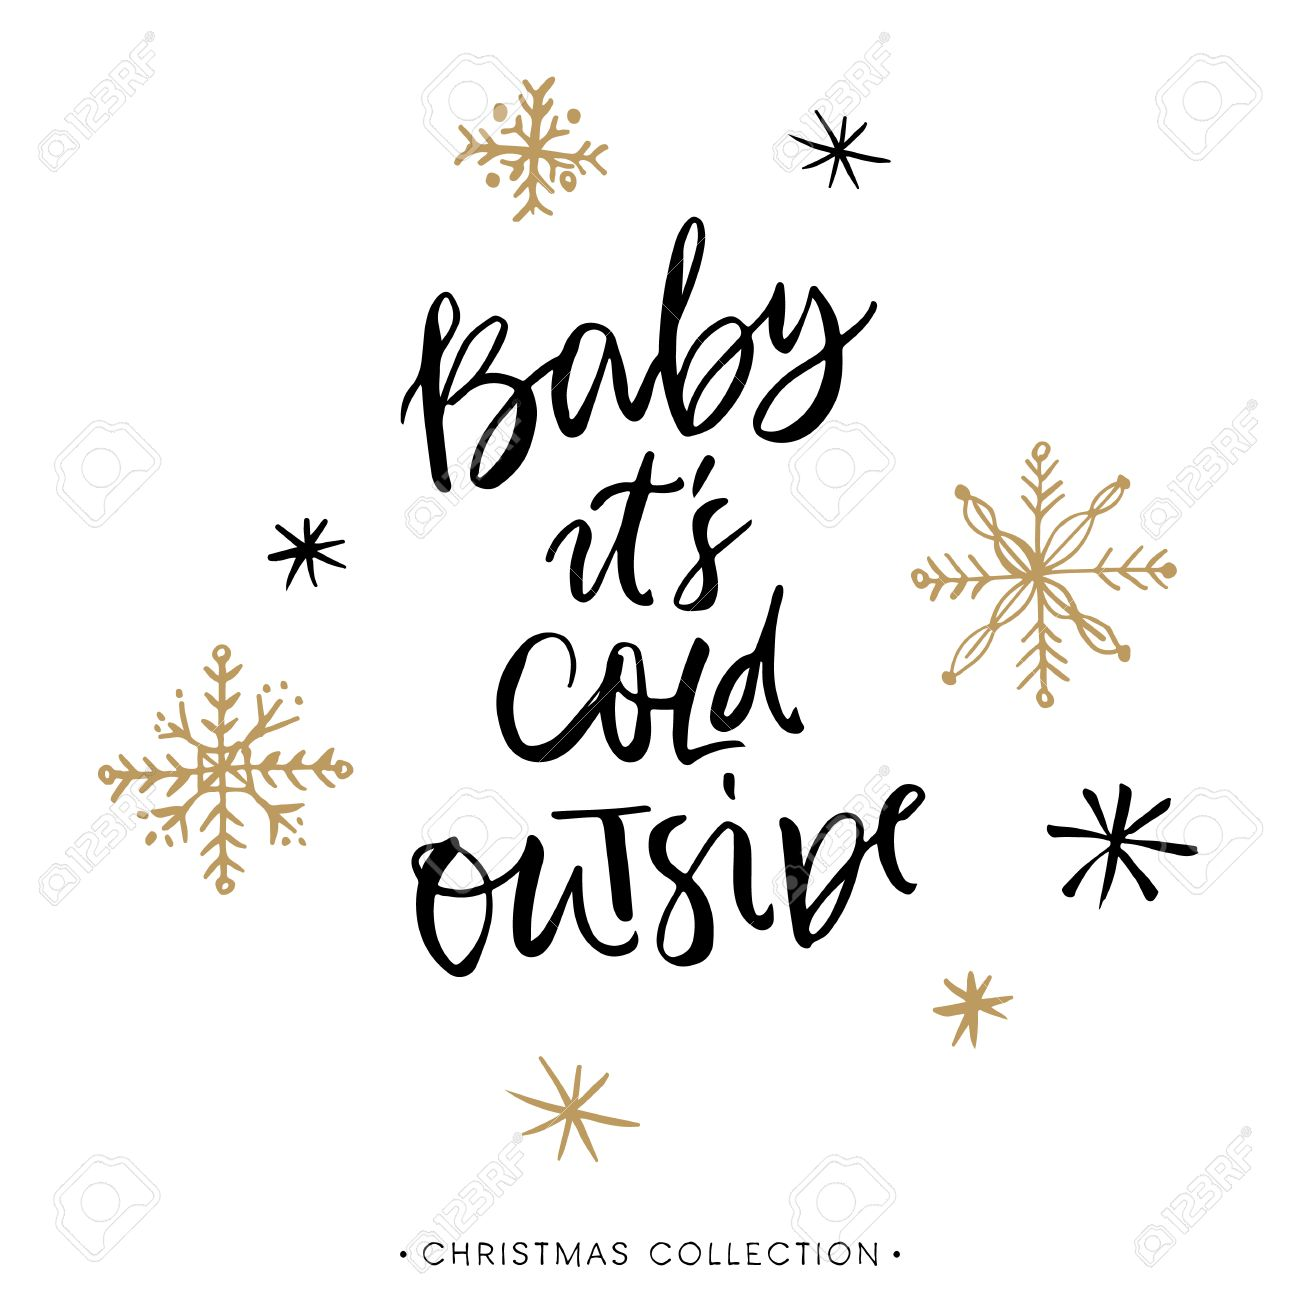 Baby it's cold outside. Christmas greeting card with calligraphy. Handwritten modern brush lettering. Hand drawn design elements. - 49114648